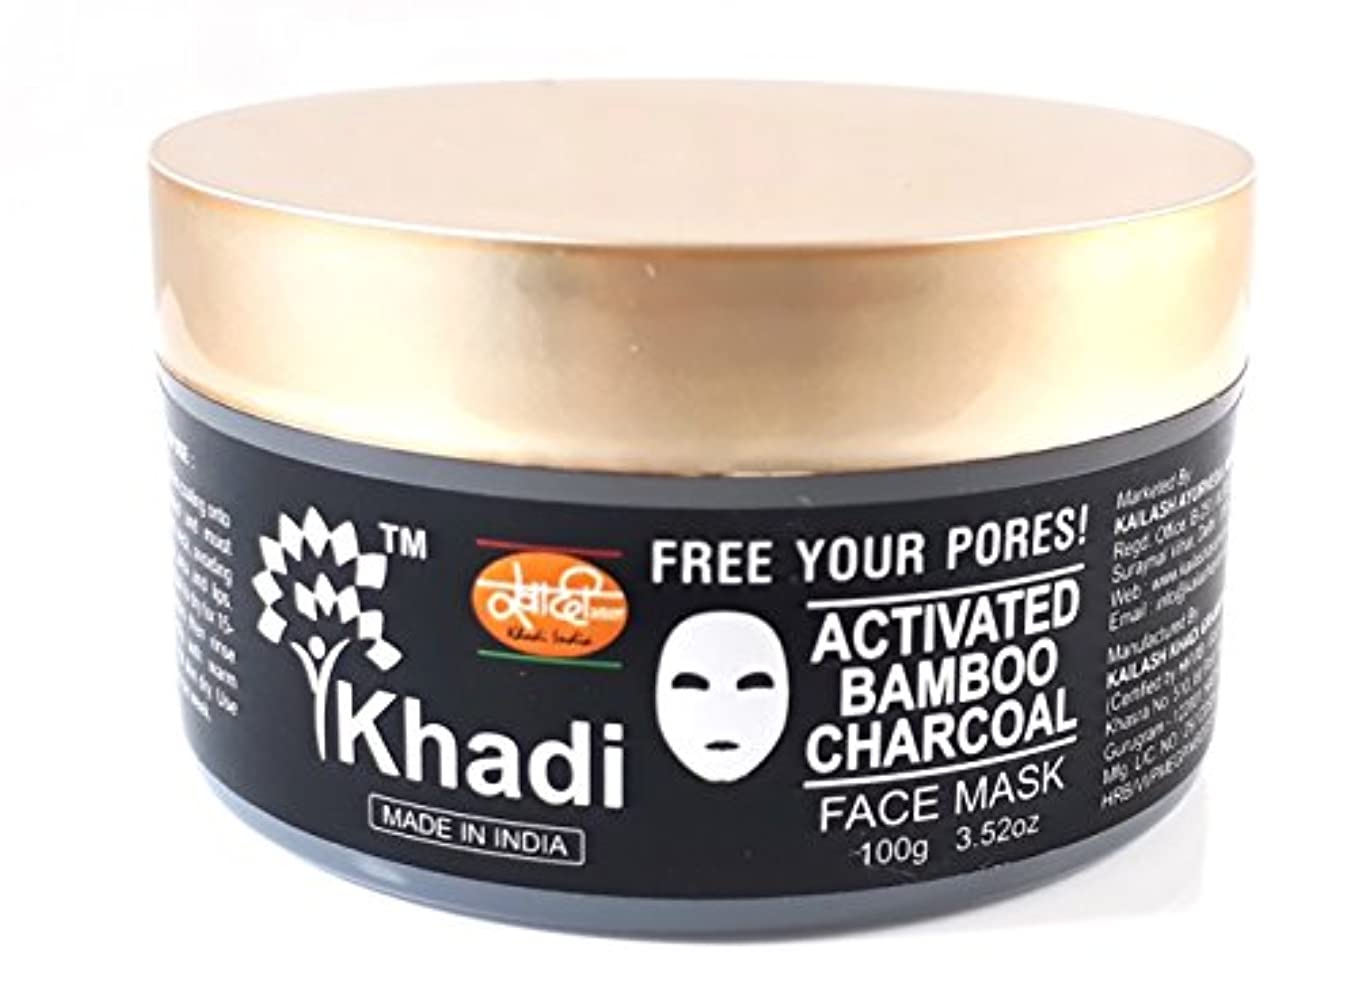 khadi activated Bamboo Charcoal face mask 100gm black face mask clear skin